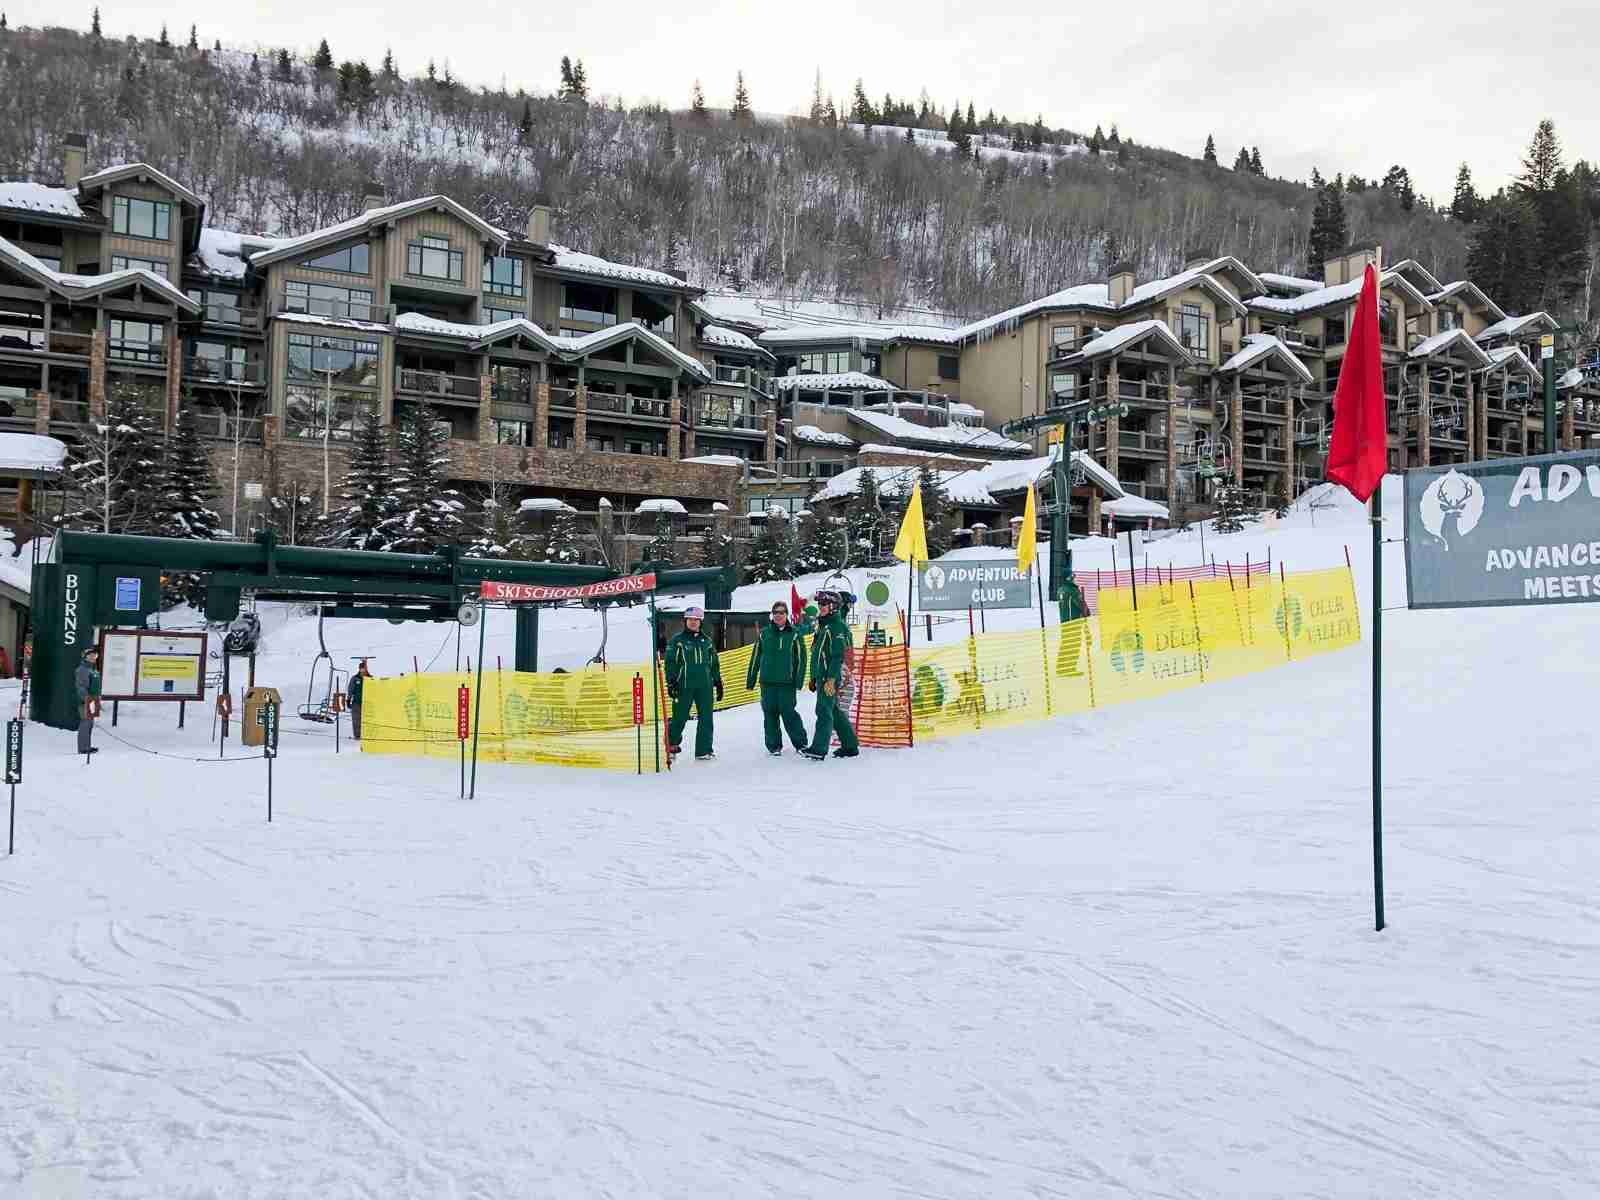 Get to the base of the Deer Valley ski resort in minutes.